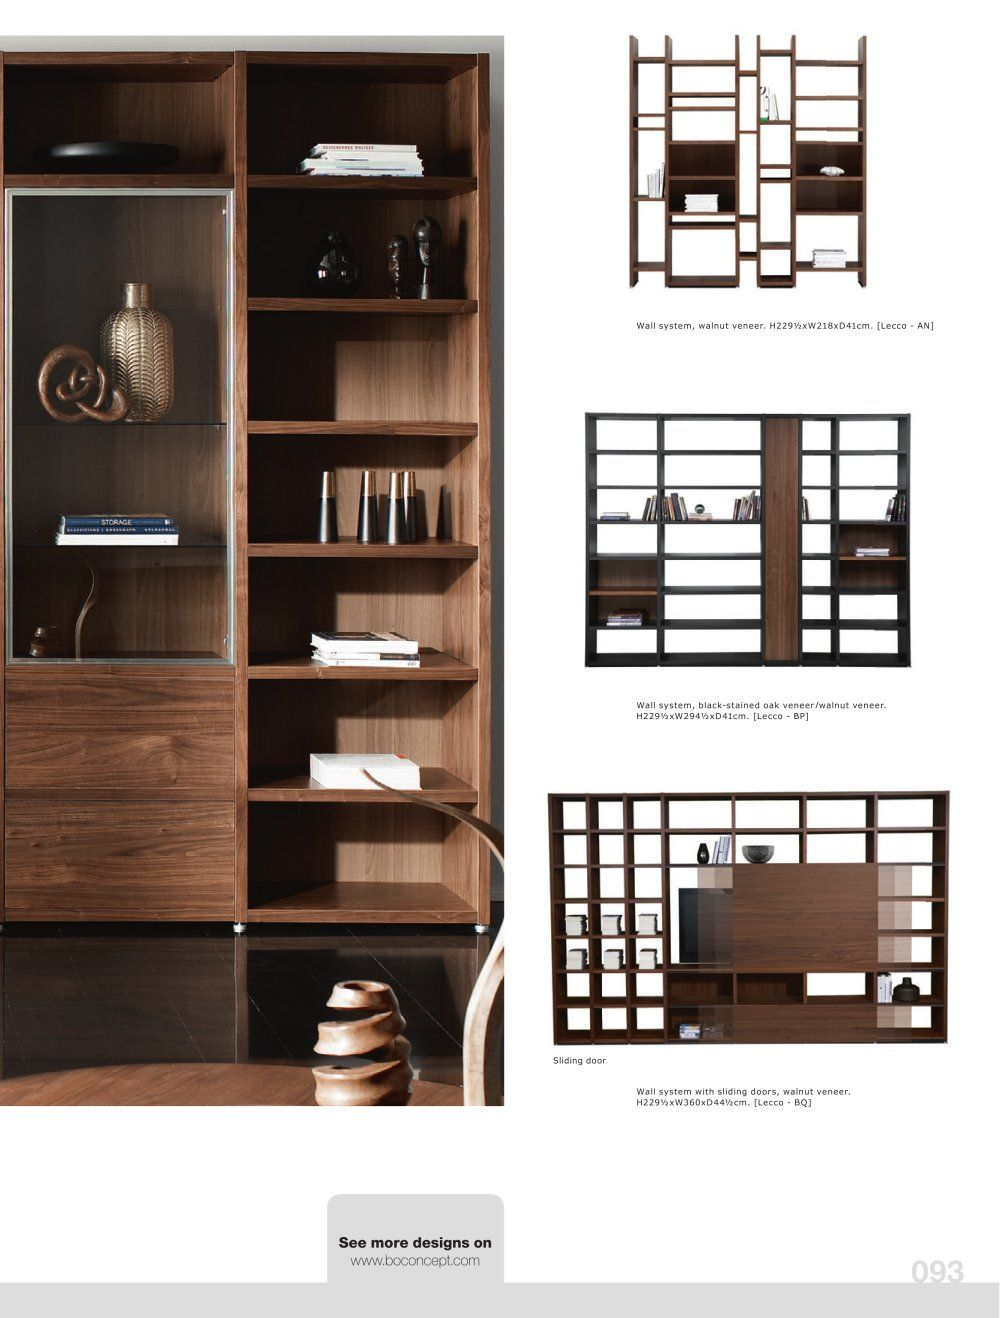 Boconcept Bookcase: Bo Concept - Wall Design With Sliding Doors